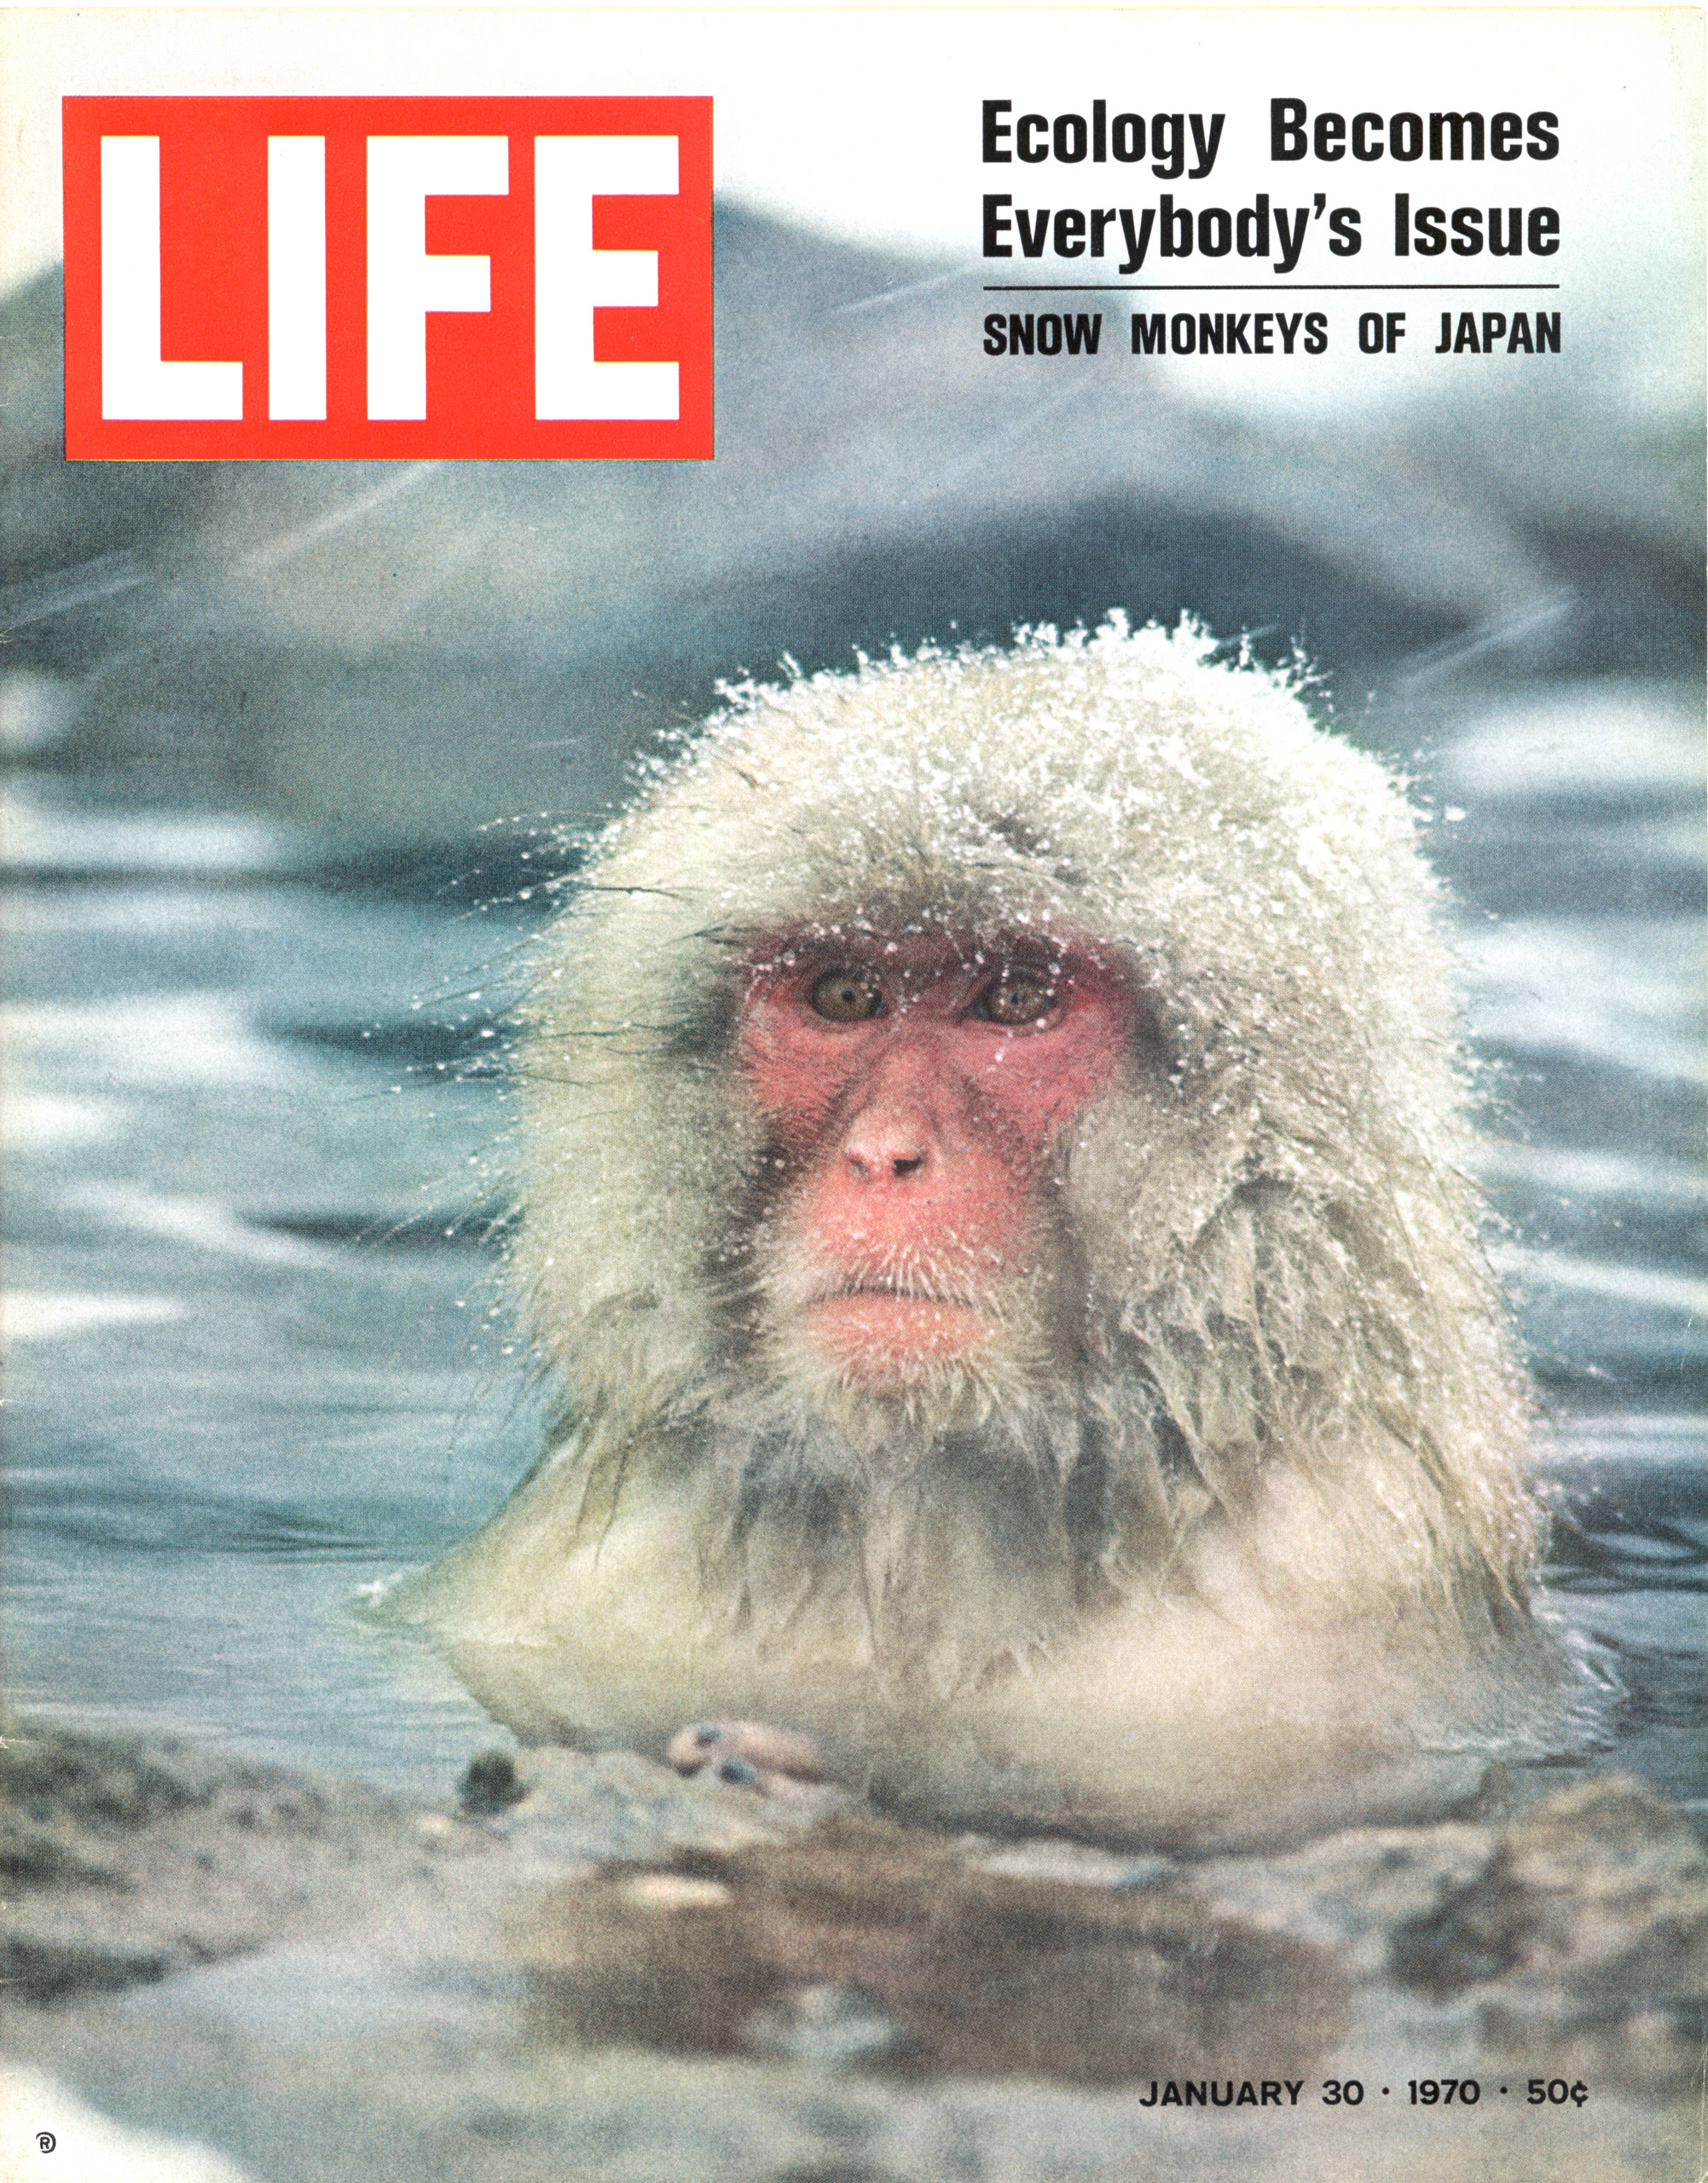 LIFE magazine cover of 01-30-1970 w. pic of snow monkey of Japan in water, by Co Rentmeester.